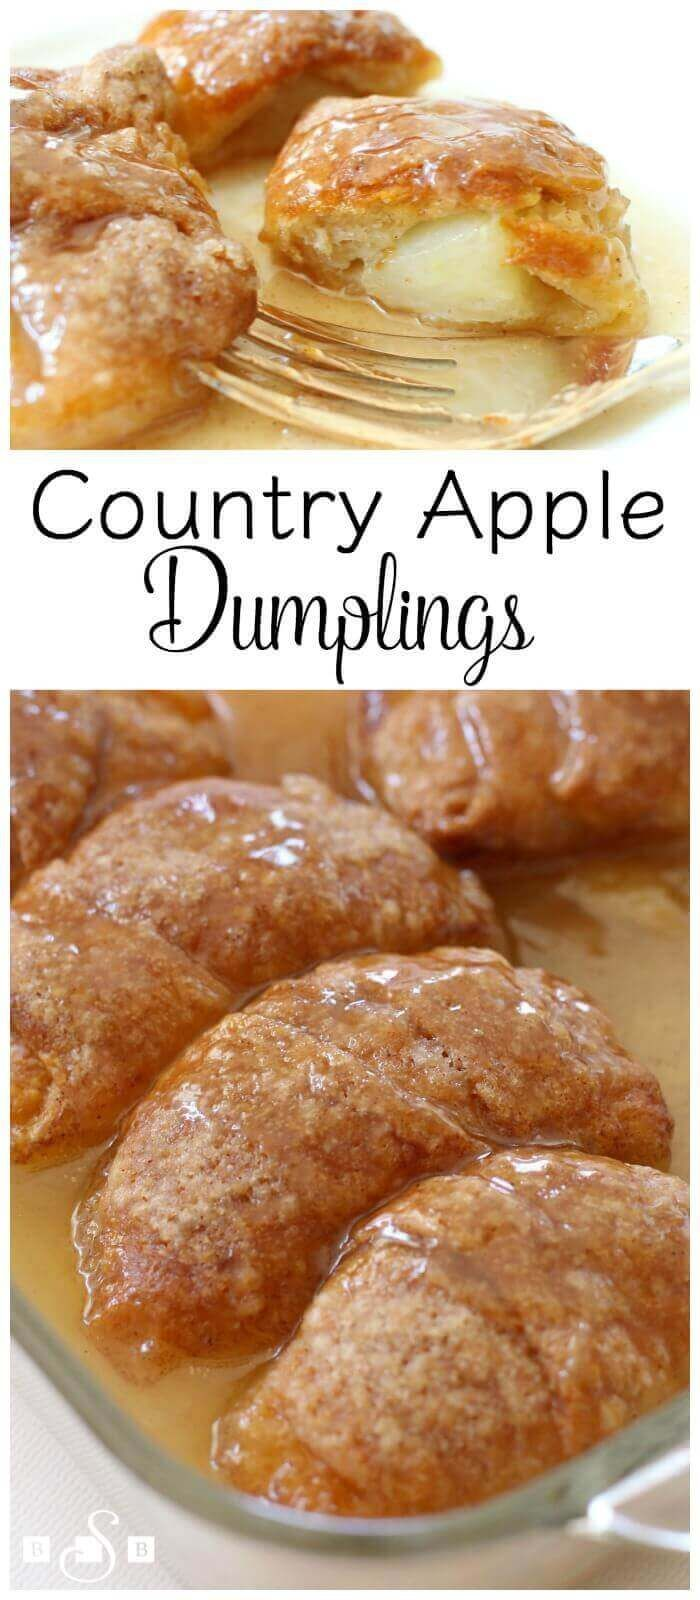 These Country Apple Dumplings are the perfect quick and easy fall dessert that get baked in a sweet sauce that your friends and family will really enjoy! via @bestblogrecipes